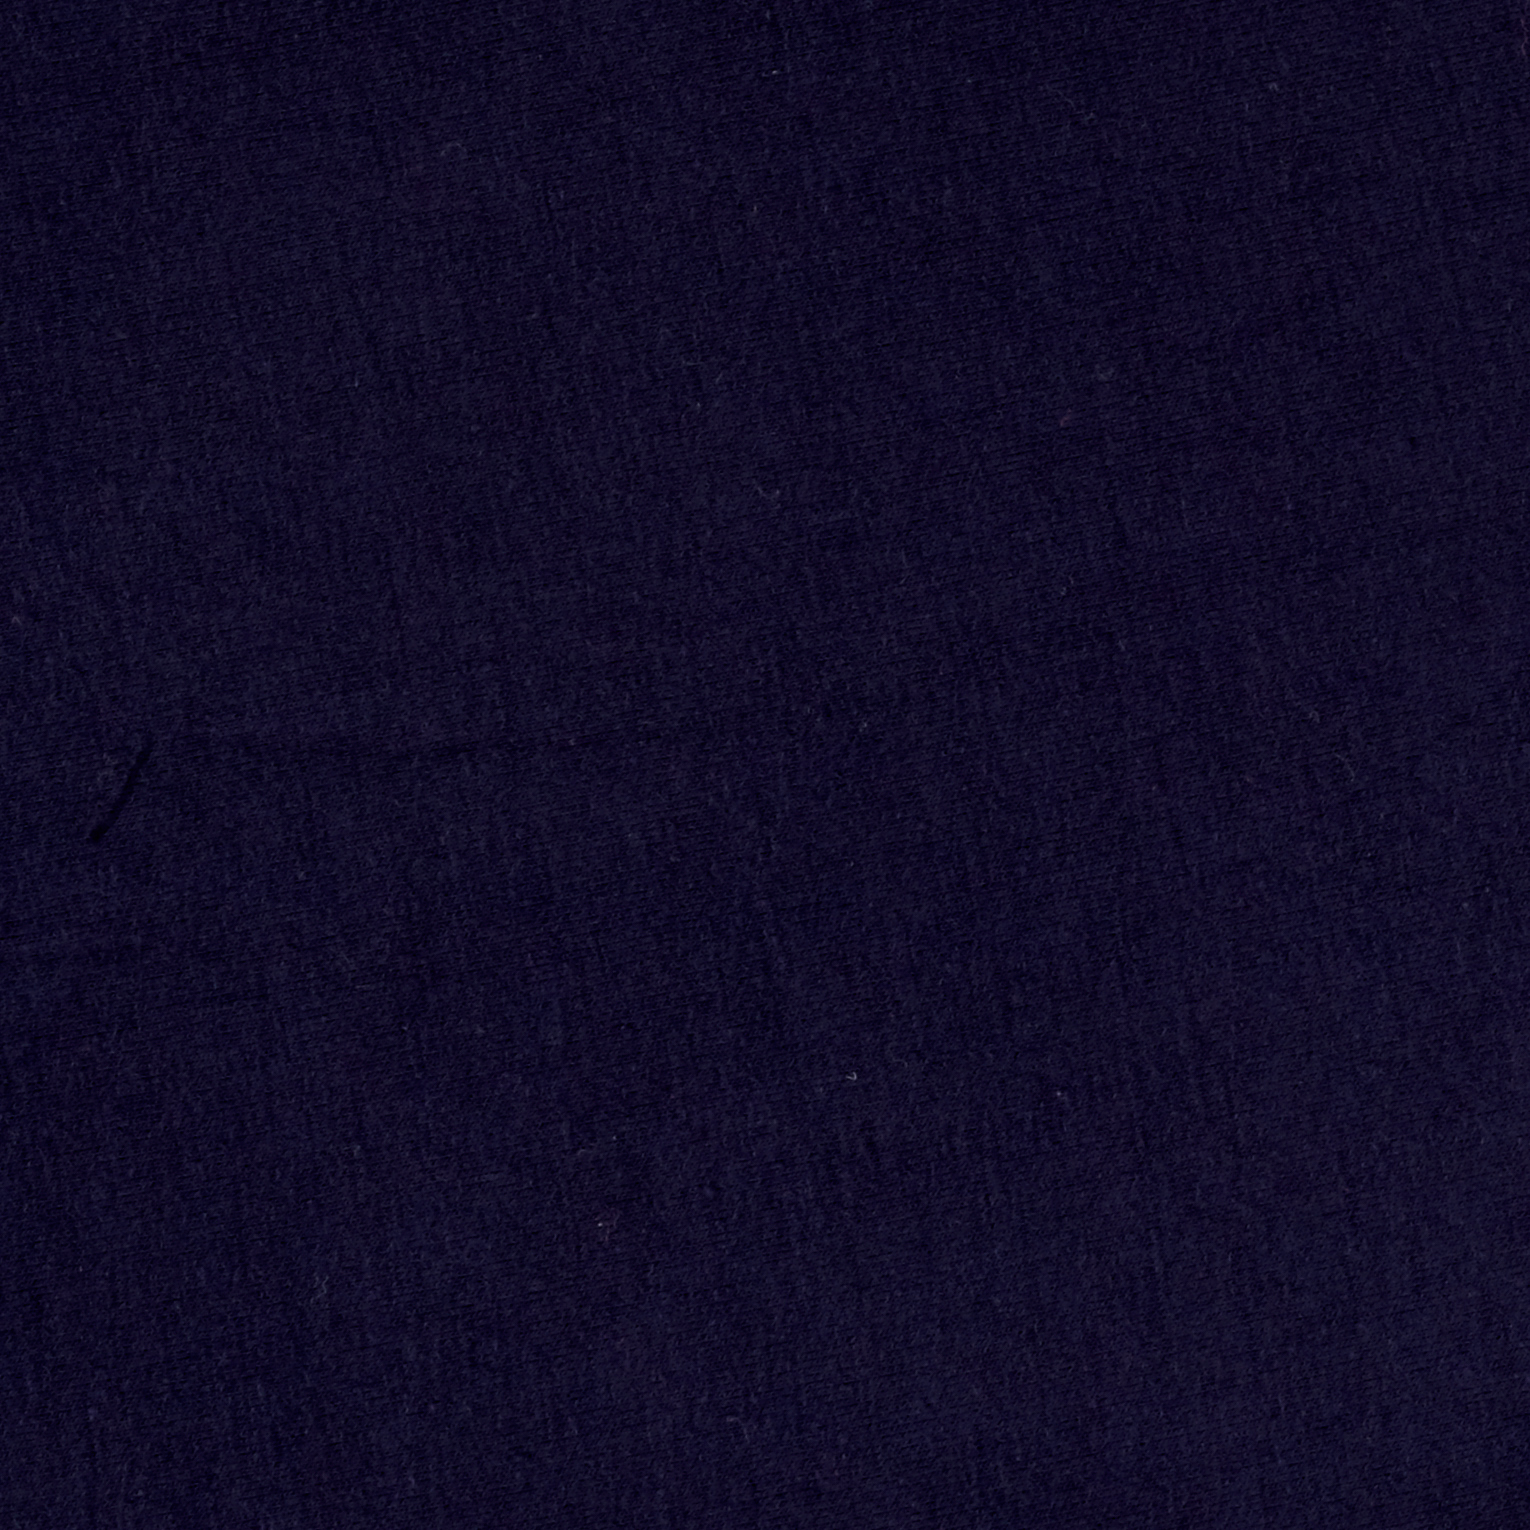 Micro Modal Rayon Jersey Knit Navy Fabric by Stardom Specialty in USA